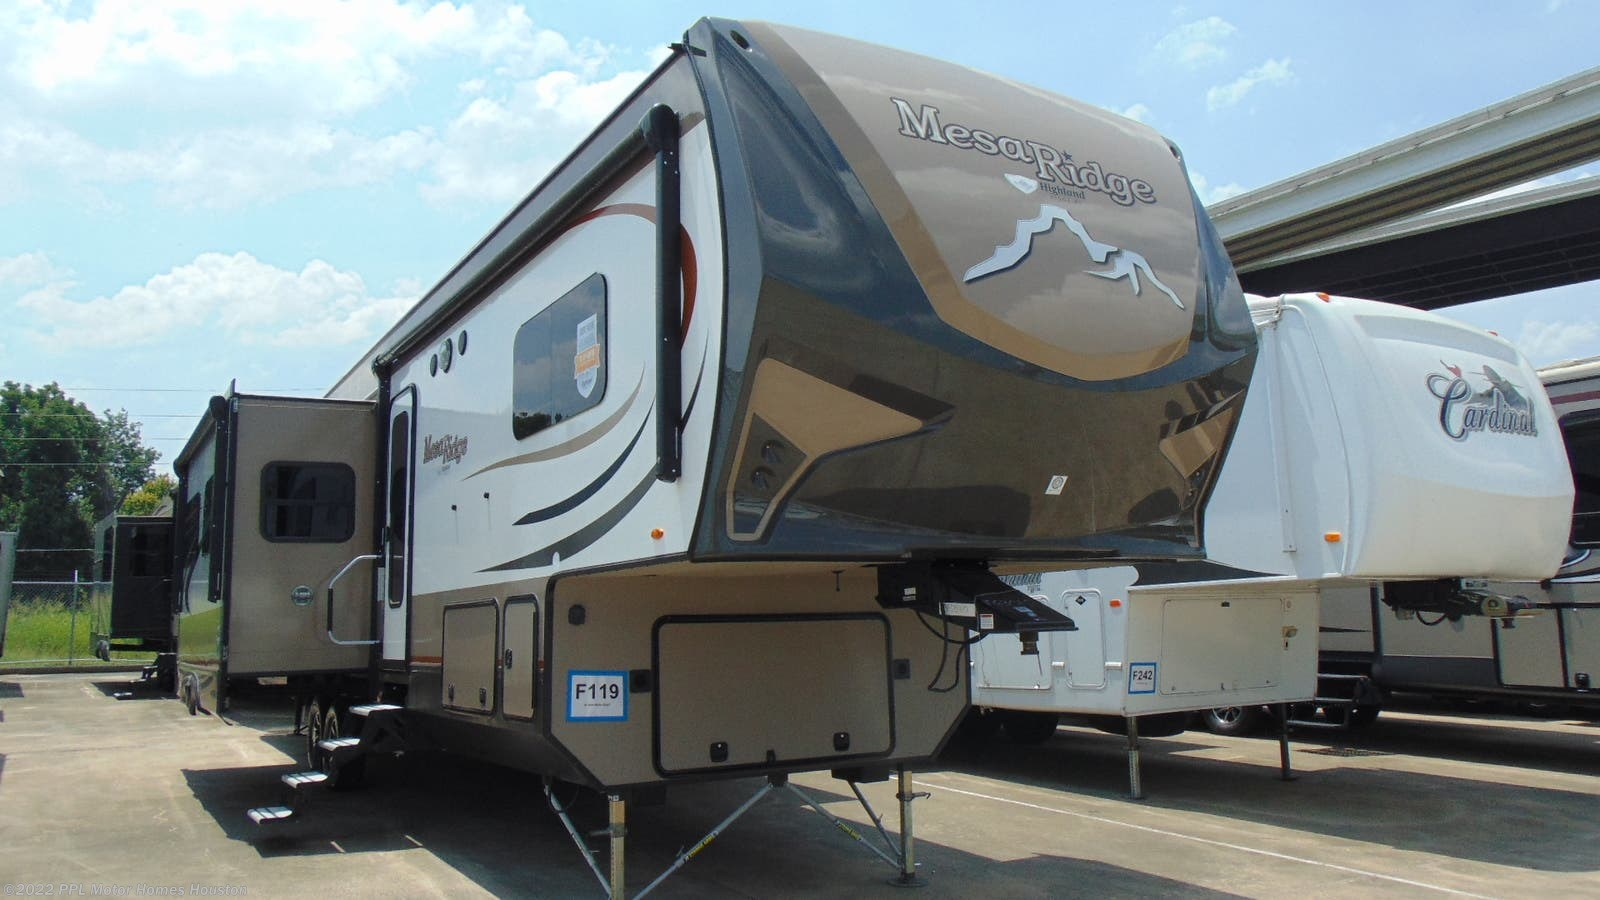 Jayco Dealer Conroe Tx >> Ppl Motor Homes Houston Tx - impremedia.net